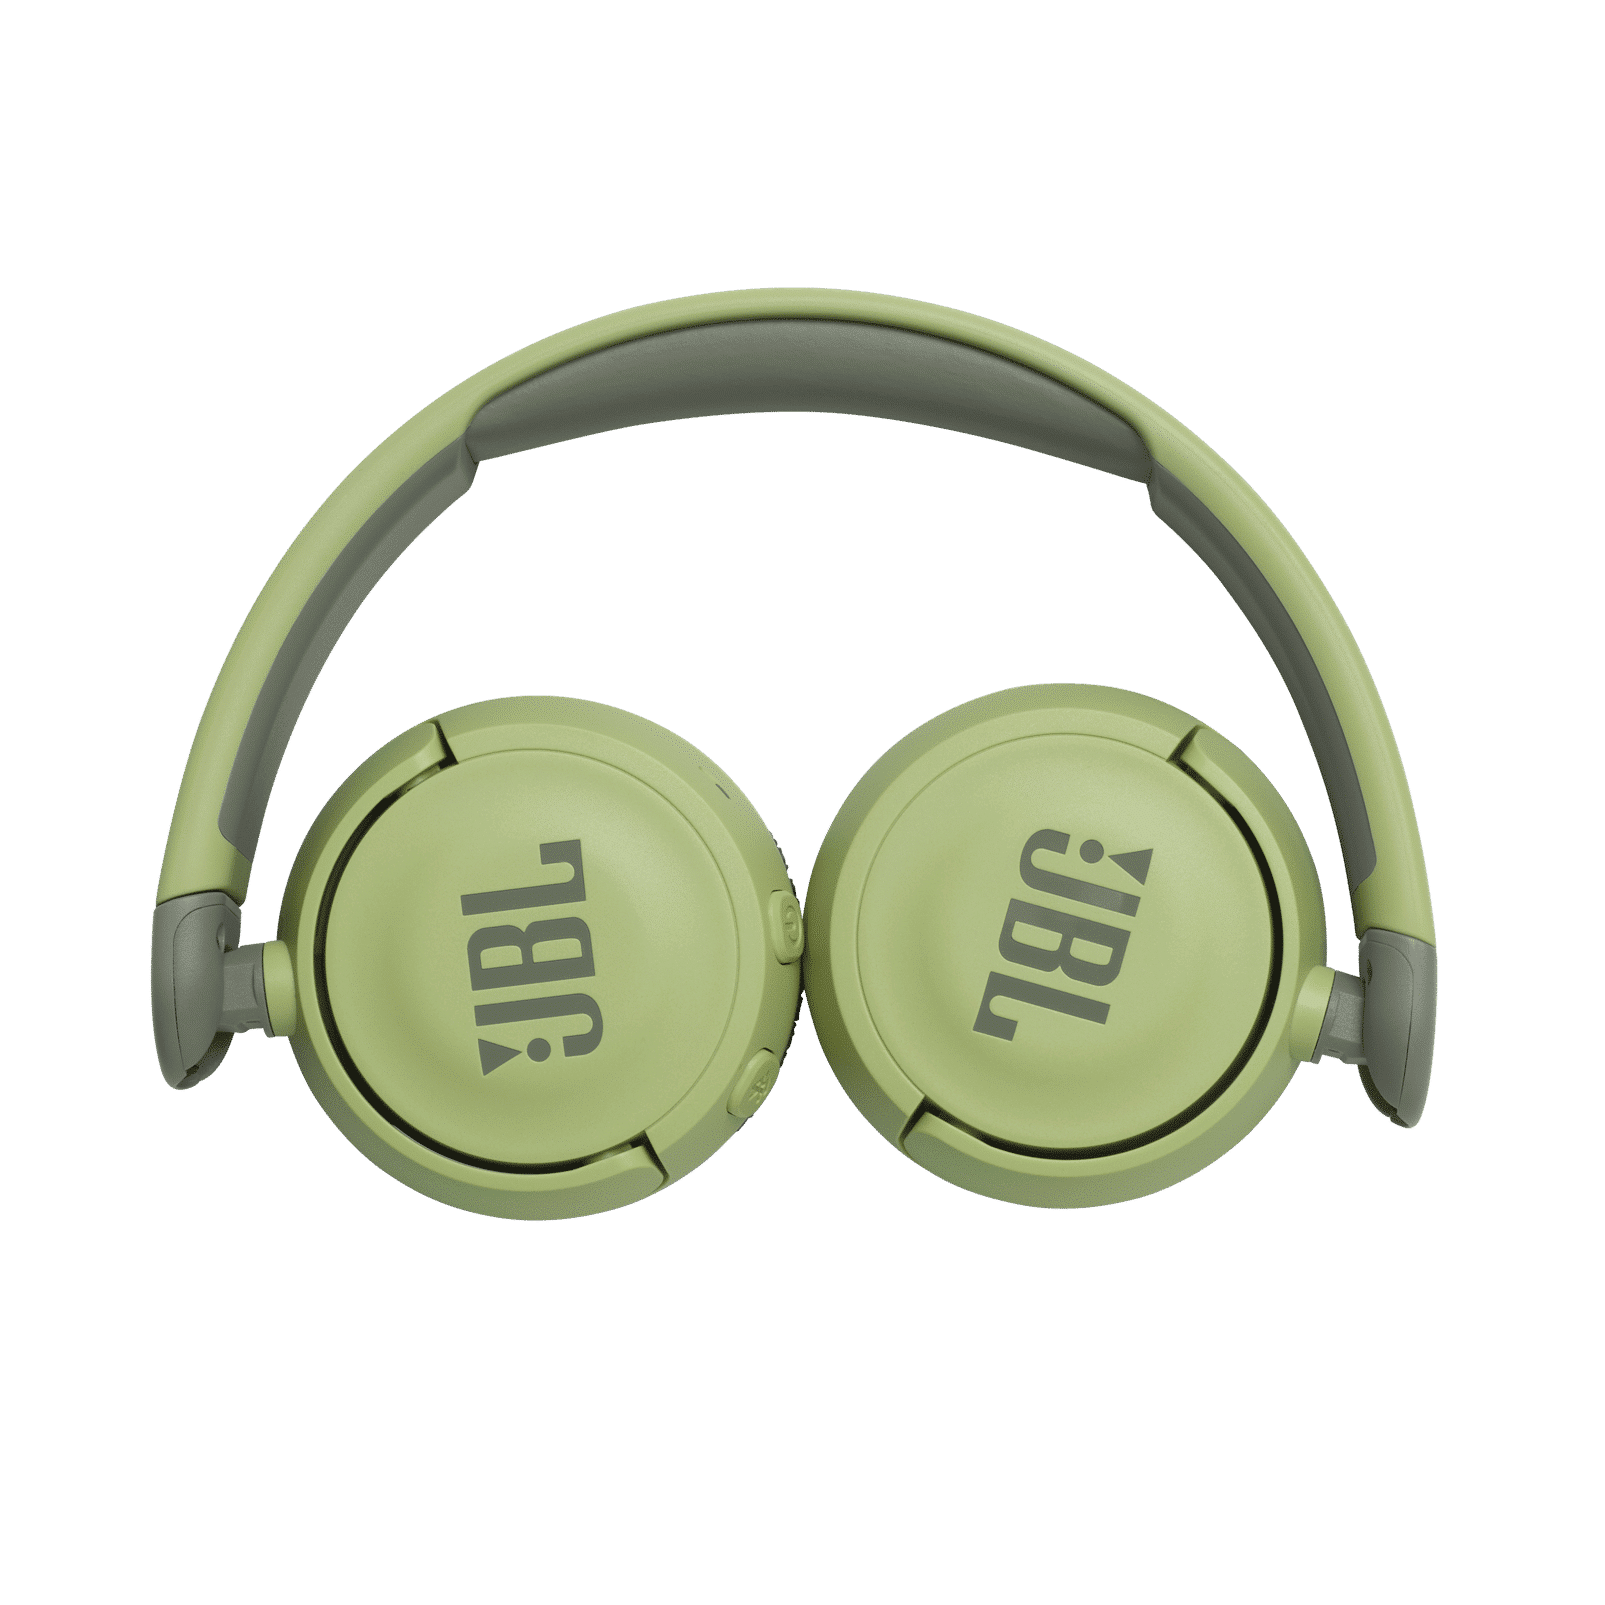 JBL Headphones with Bluetooth for Kids in green